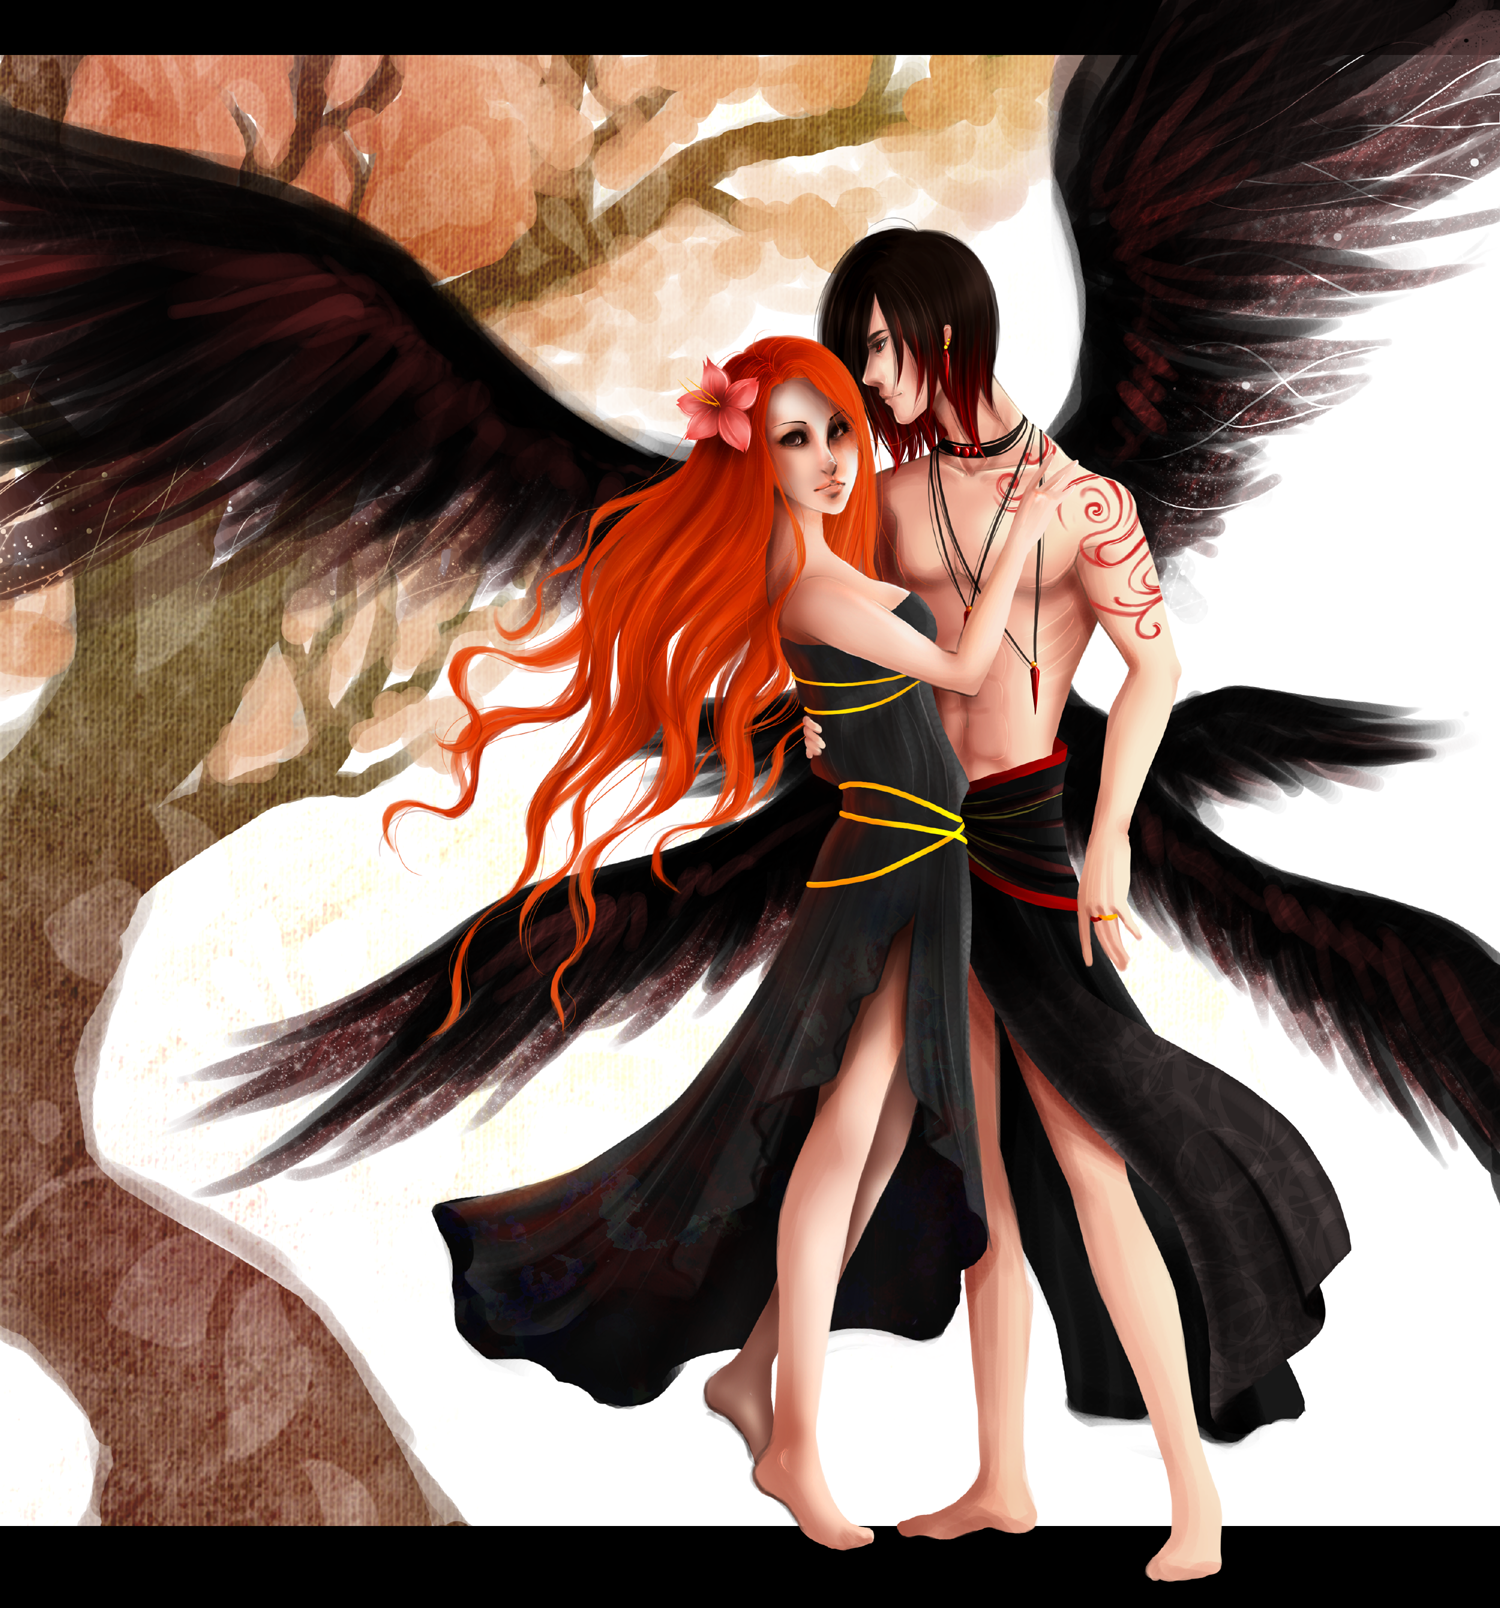 Lilith And Lucifer By ArtBunneh On DeviantArt